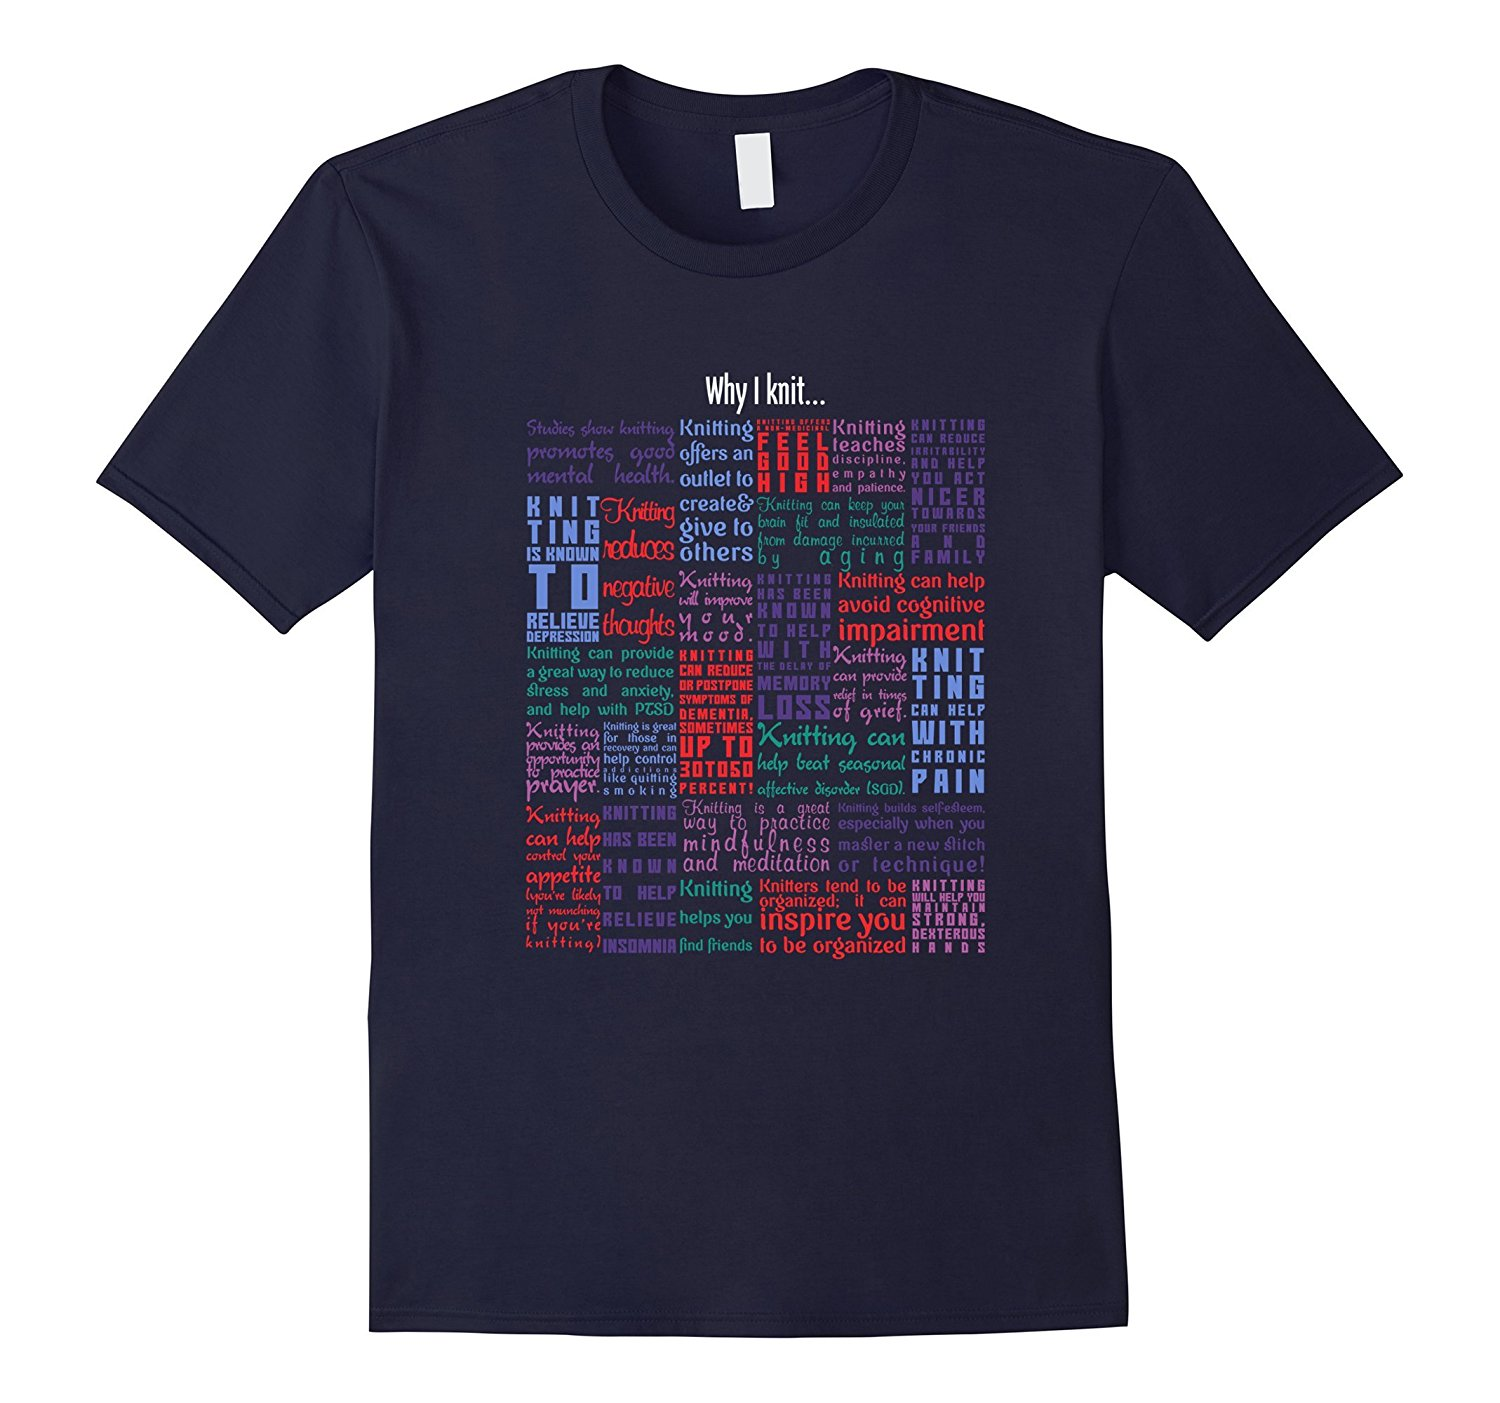 The Best T-Shirts For Knitters - Score Great Gifts For Crafty Folks Who Love To Knit!